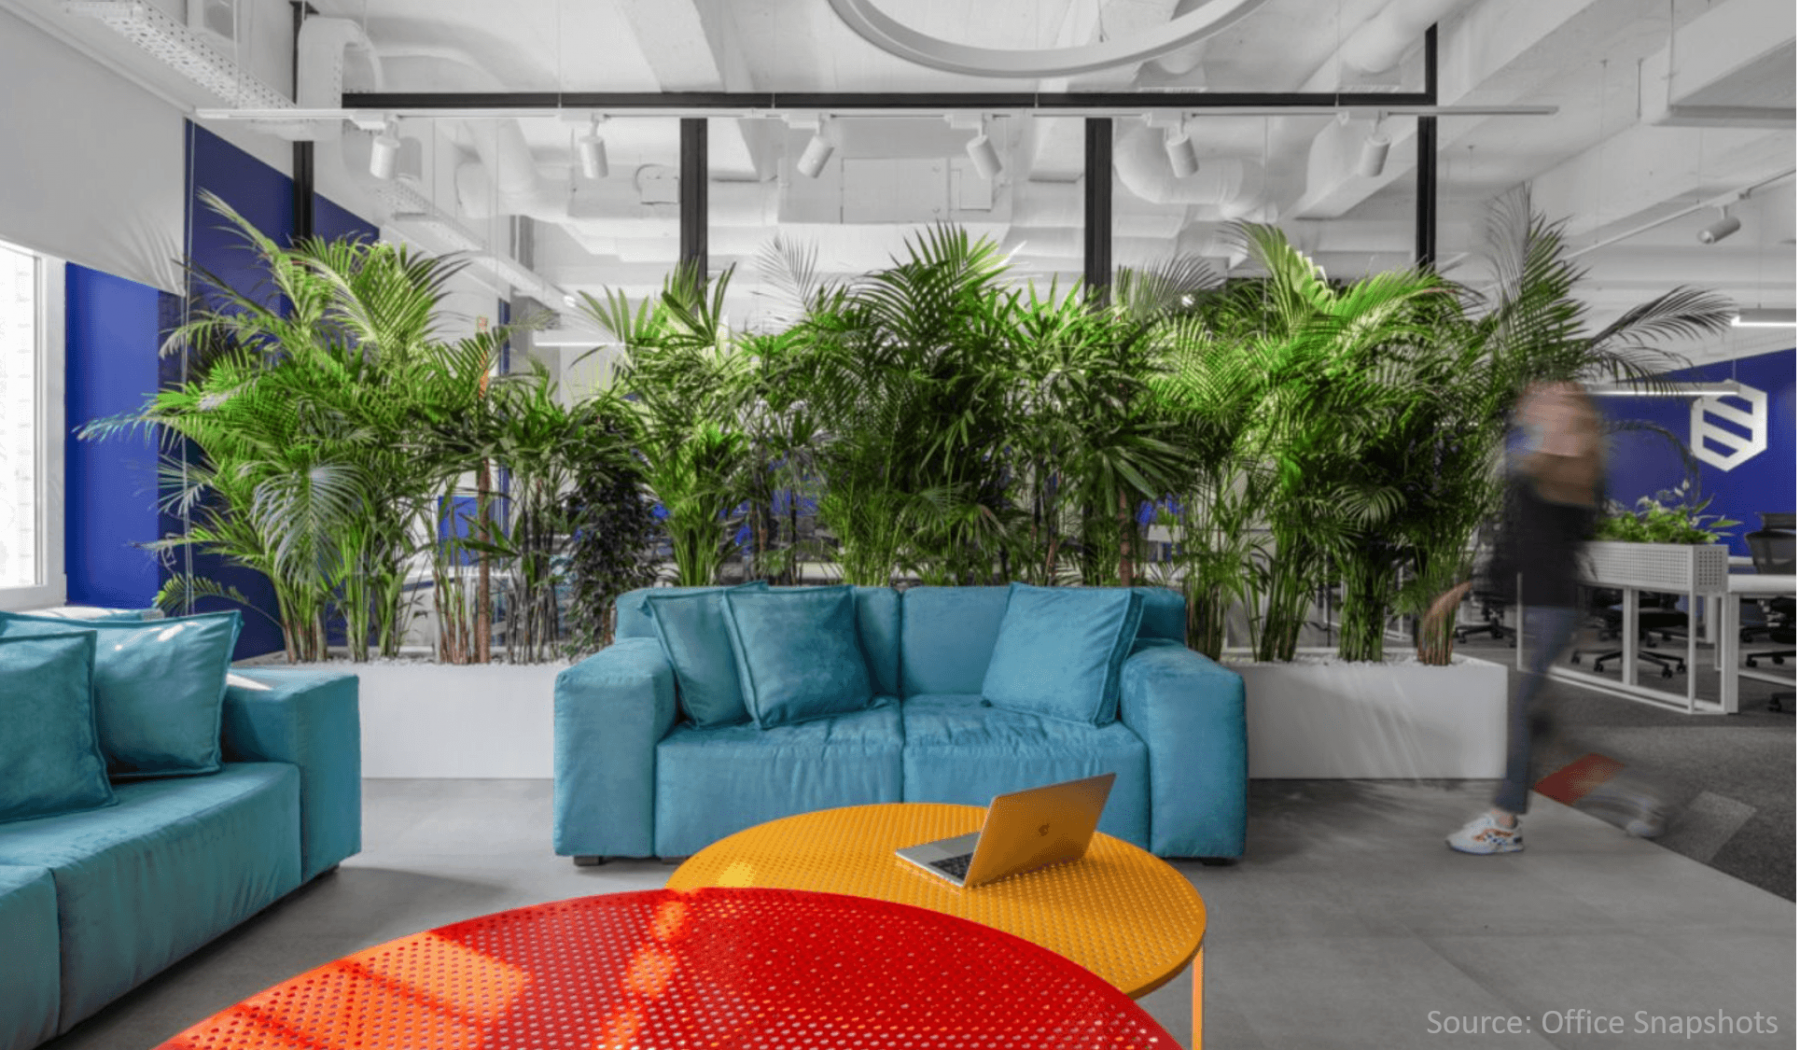 Wall-of-larg-palm-plants-in-contemorary-office-space